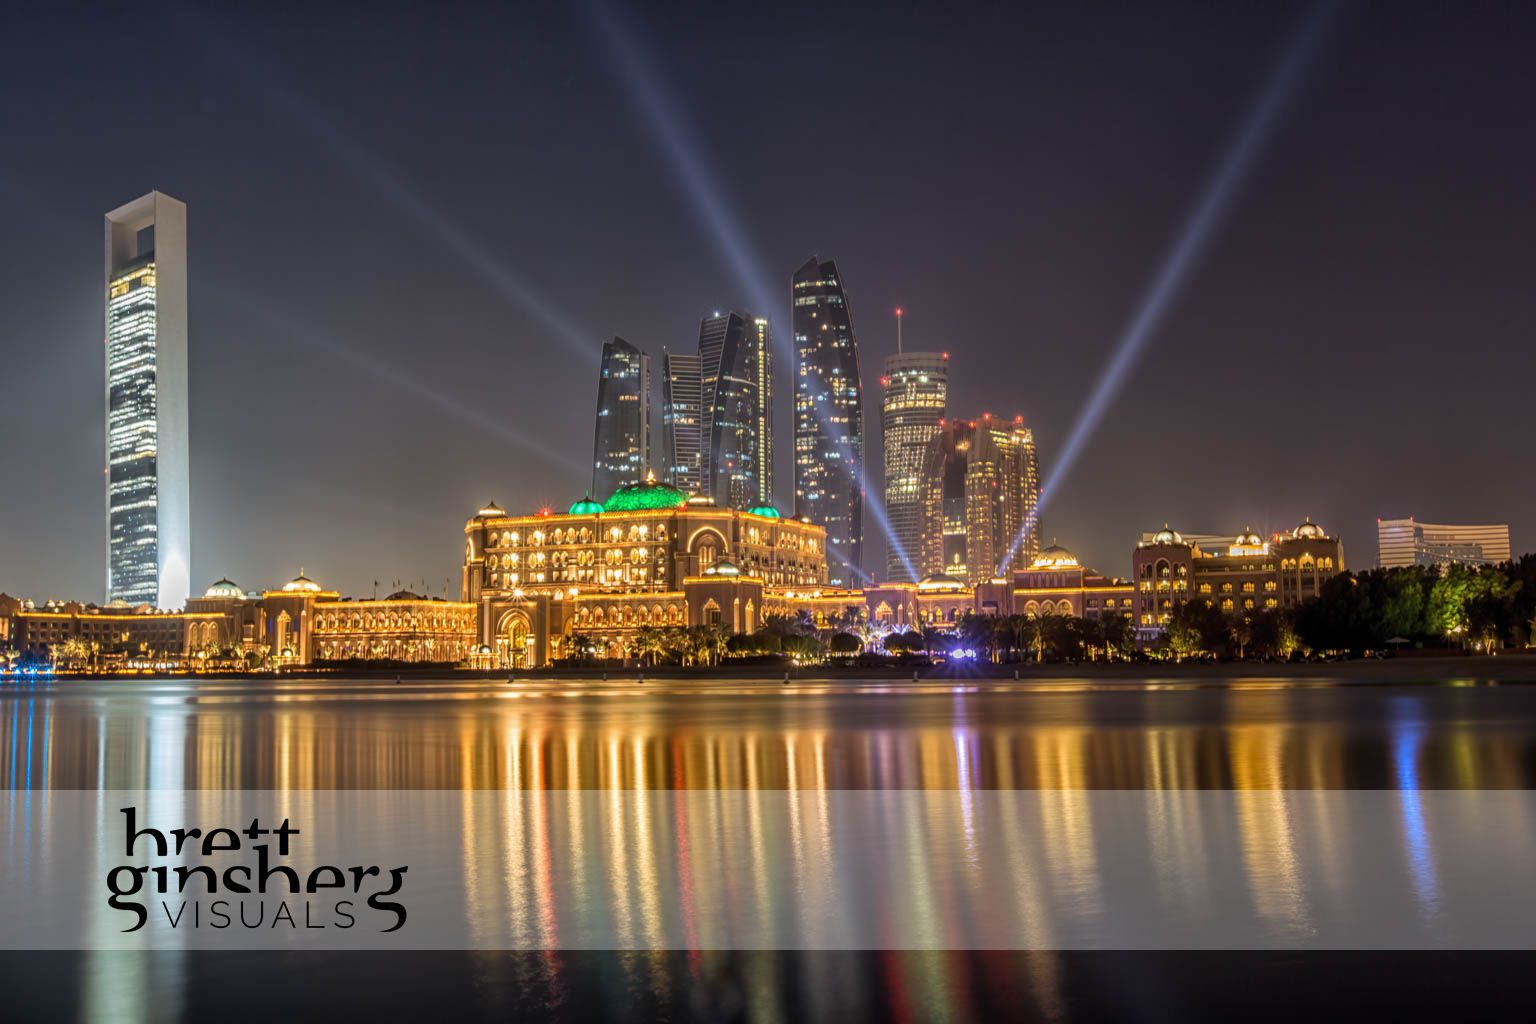 palace hotel in adu dhabi at night with search lights